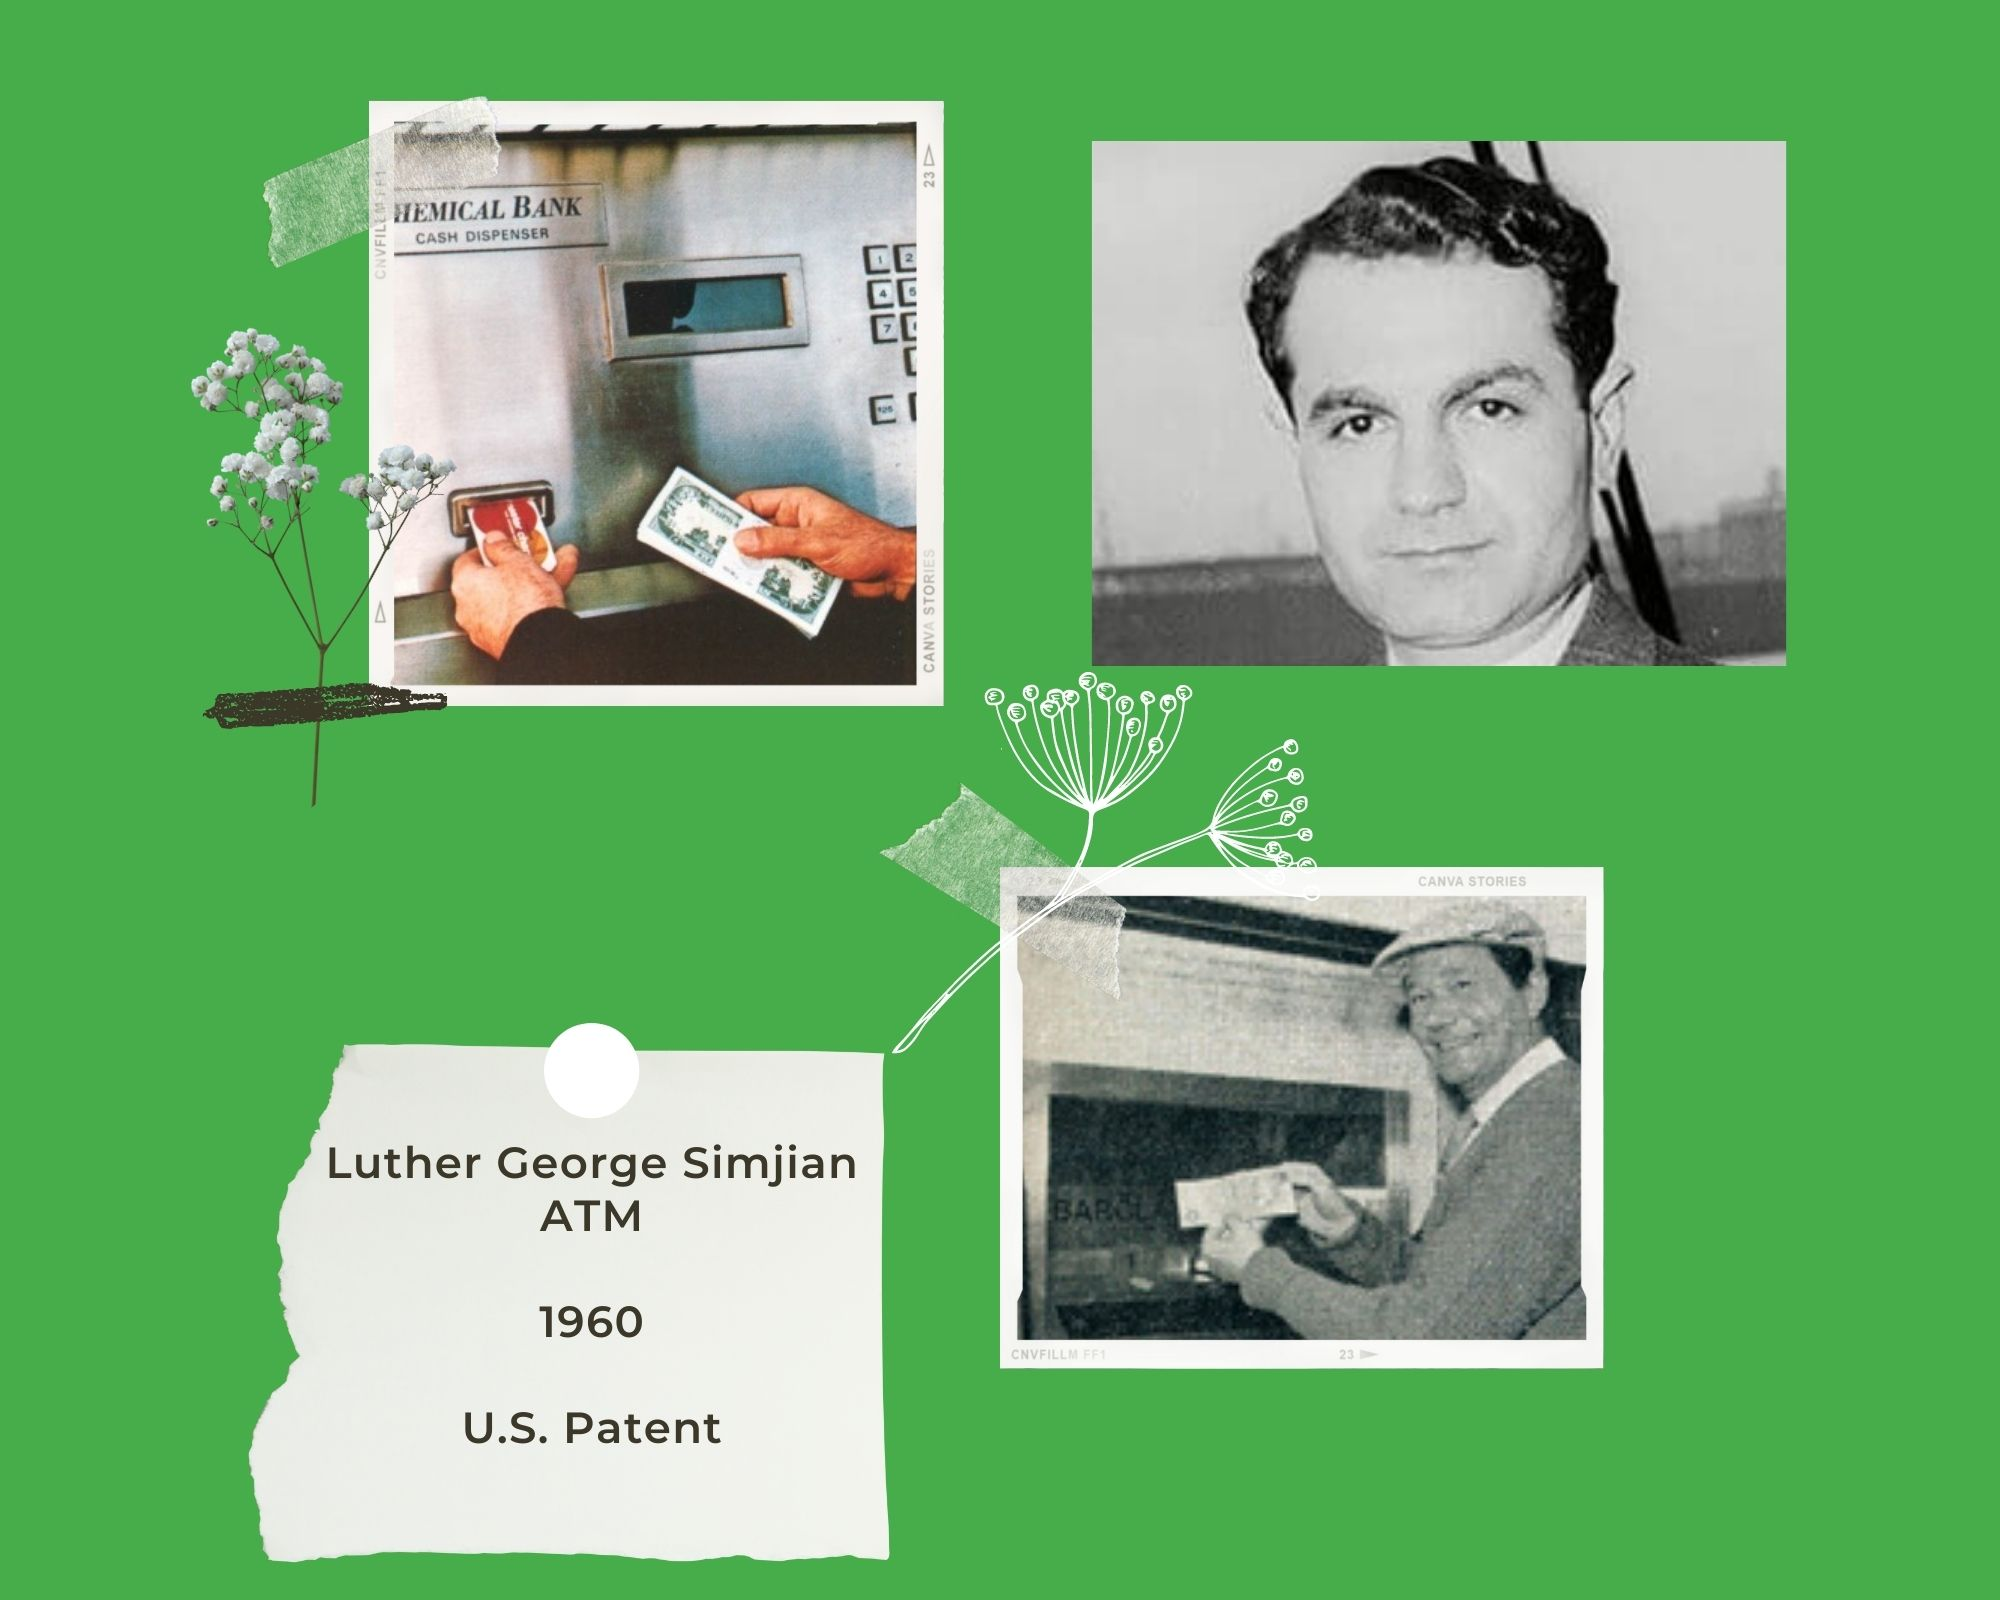 Luther George Simjian ATM